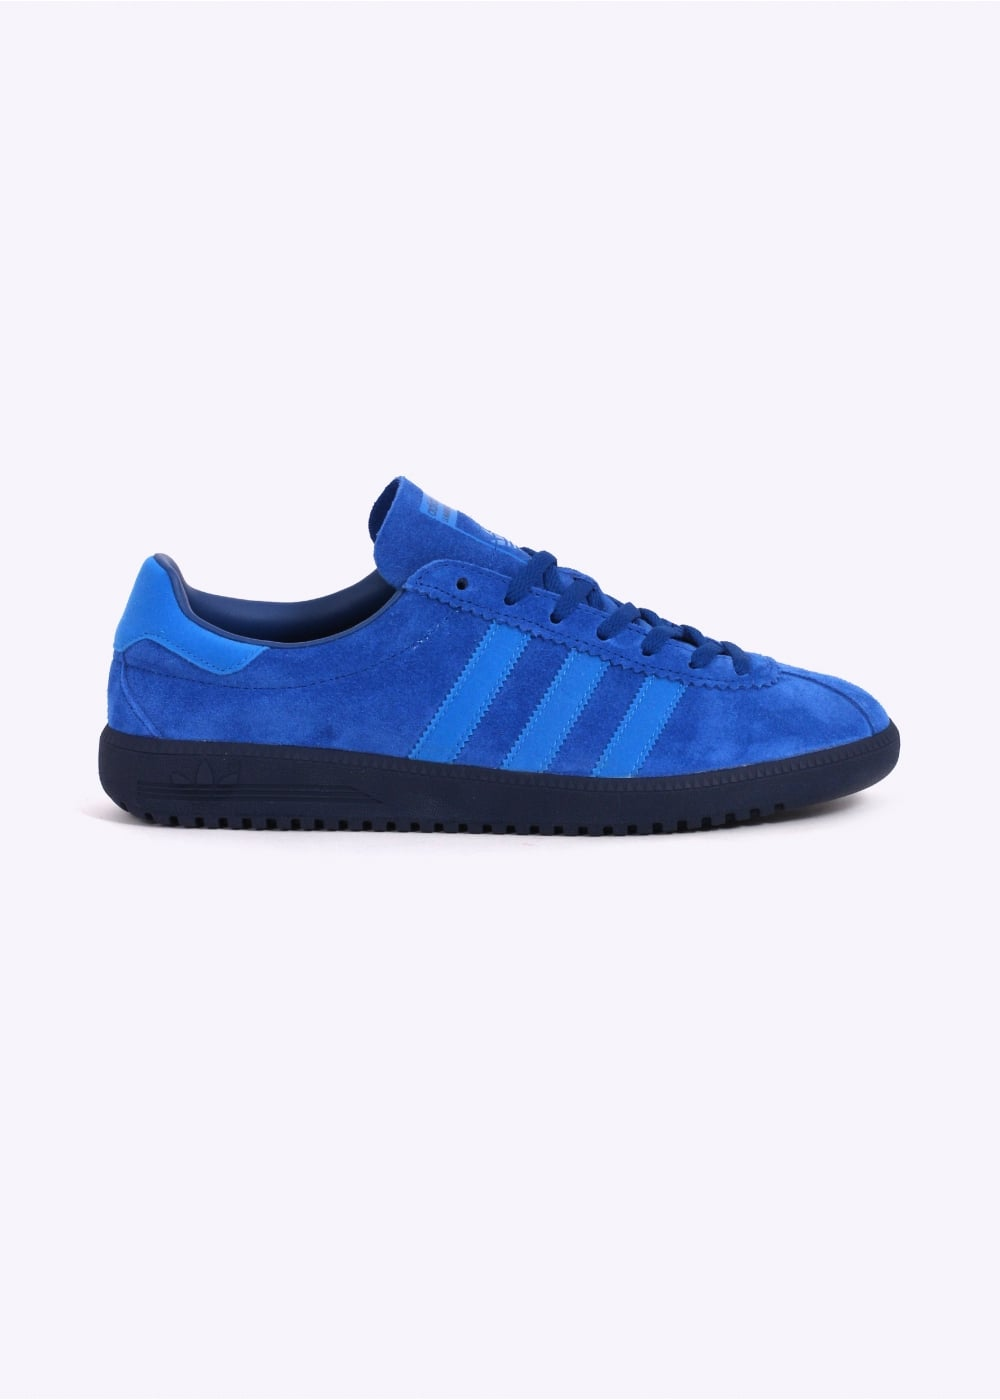 1877fbc97 adidas Originals Footwear Bermuda - Royal Blue - Triads Mens from ...